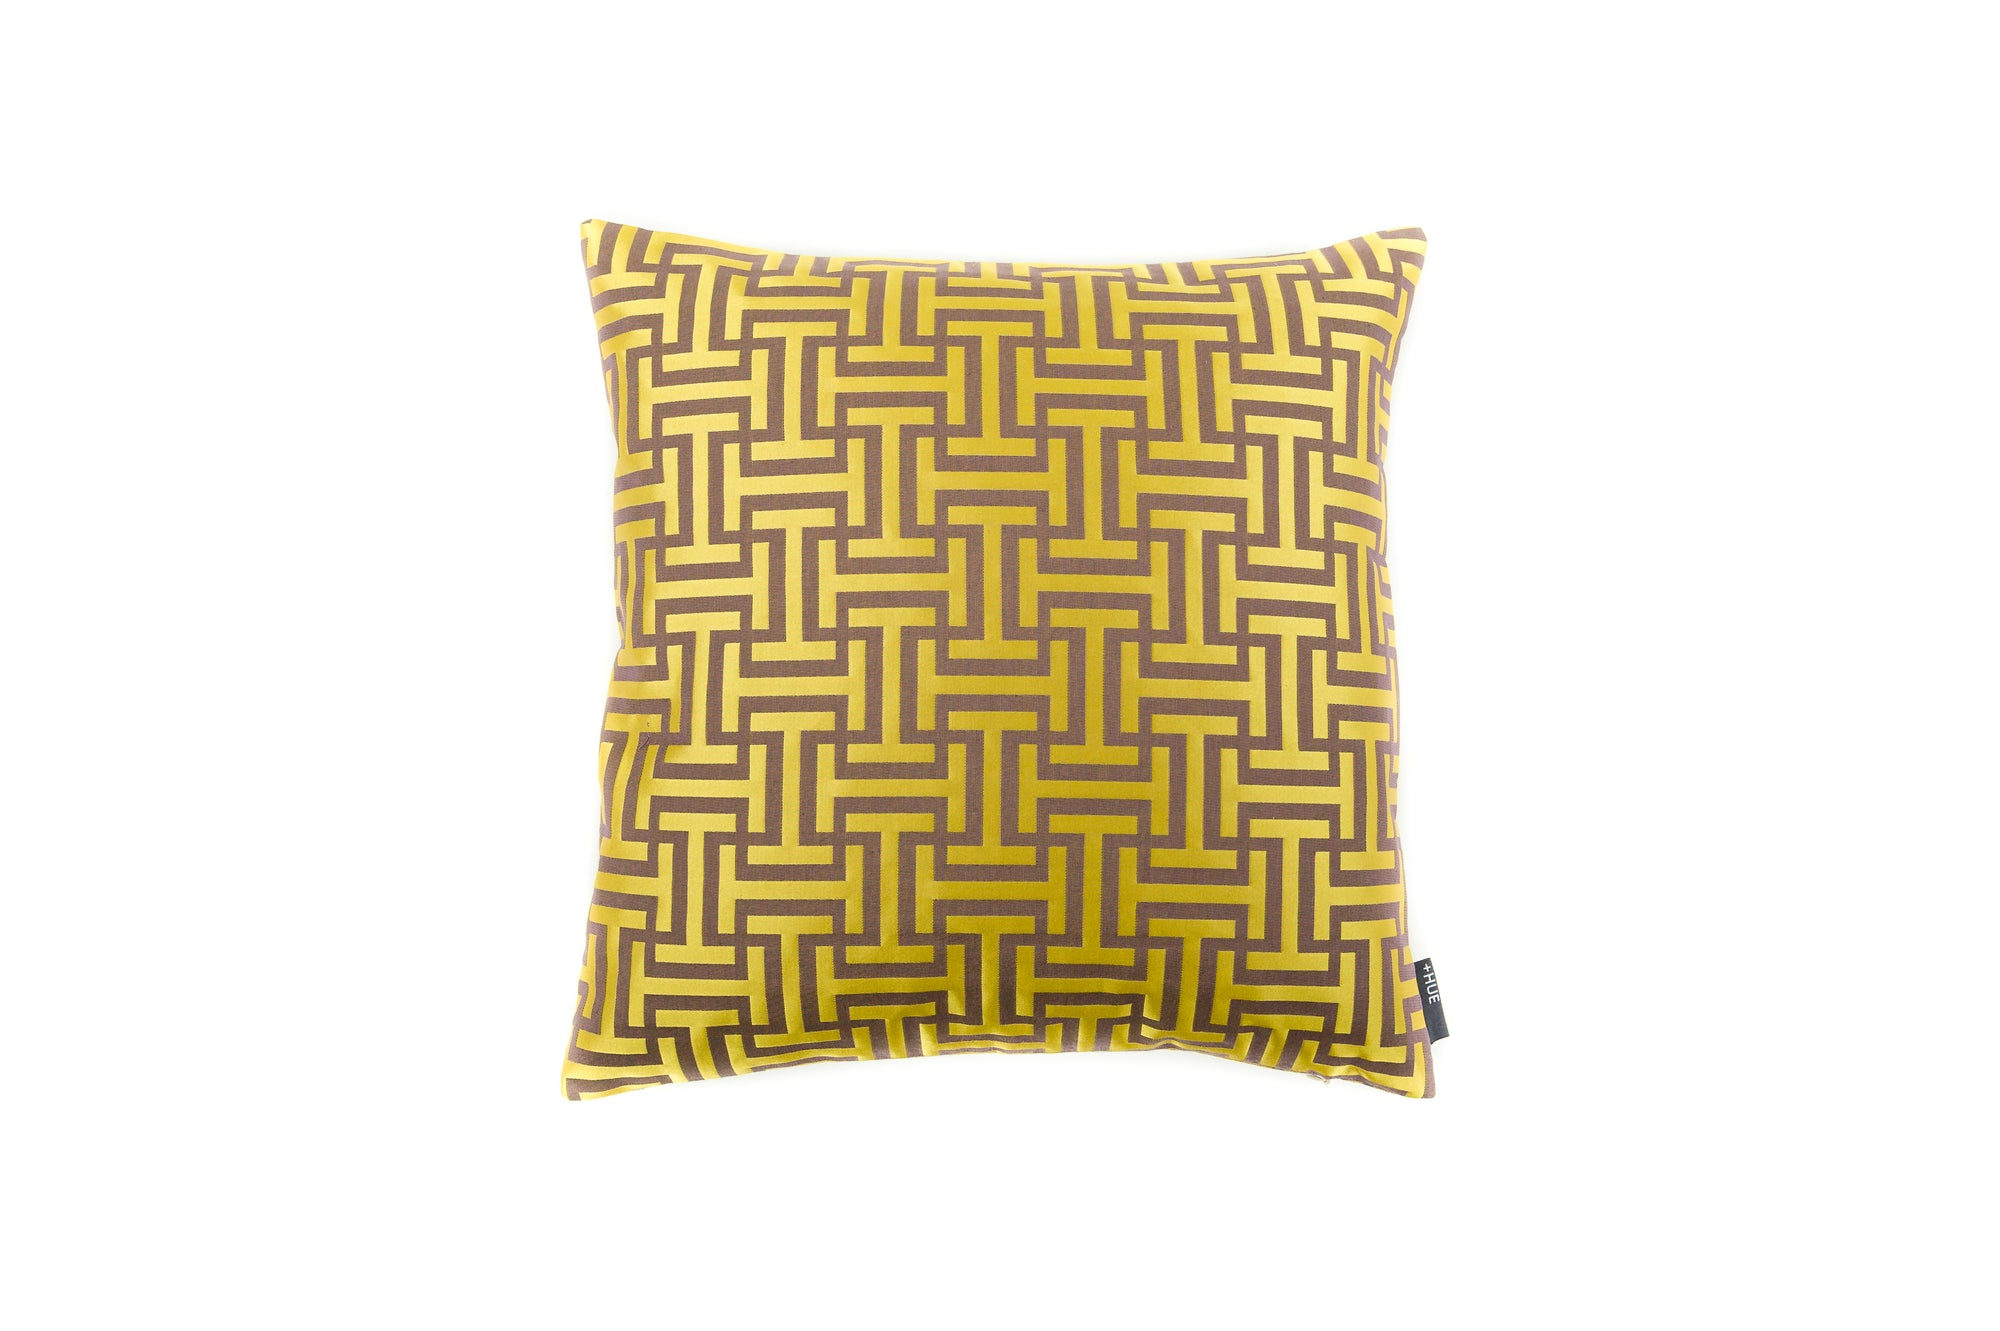 Cushion Abstract Chic Goid - Fervor + Hue